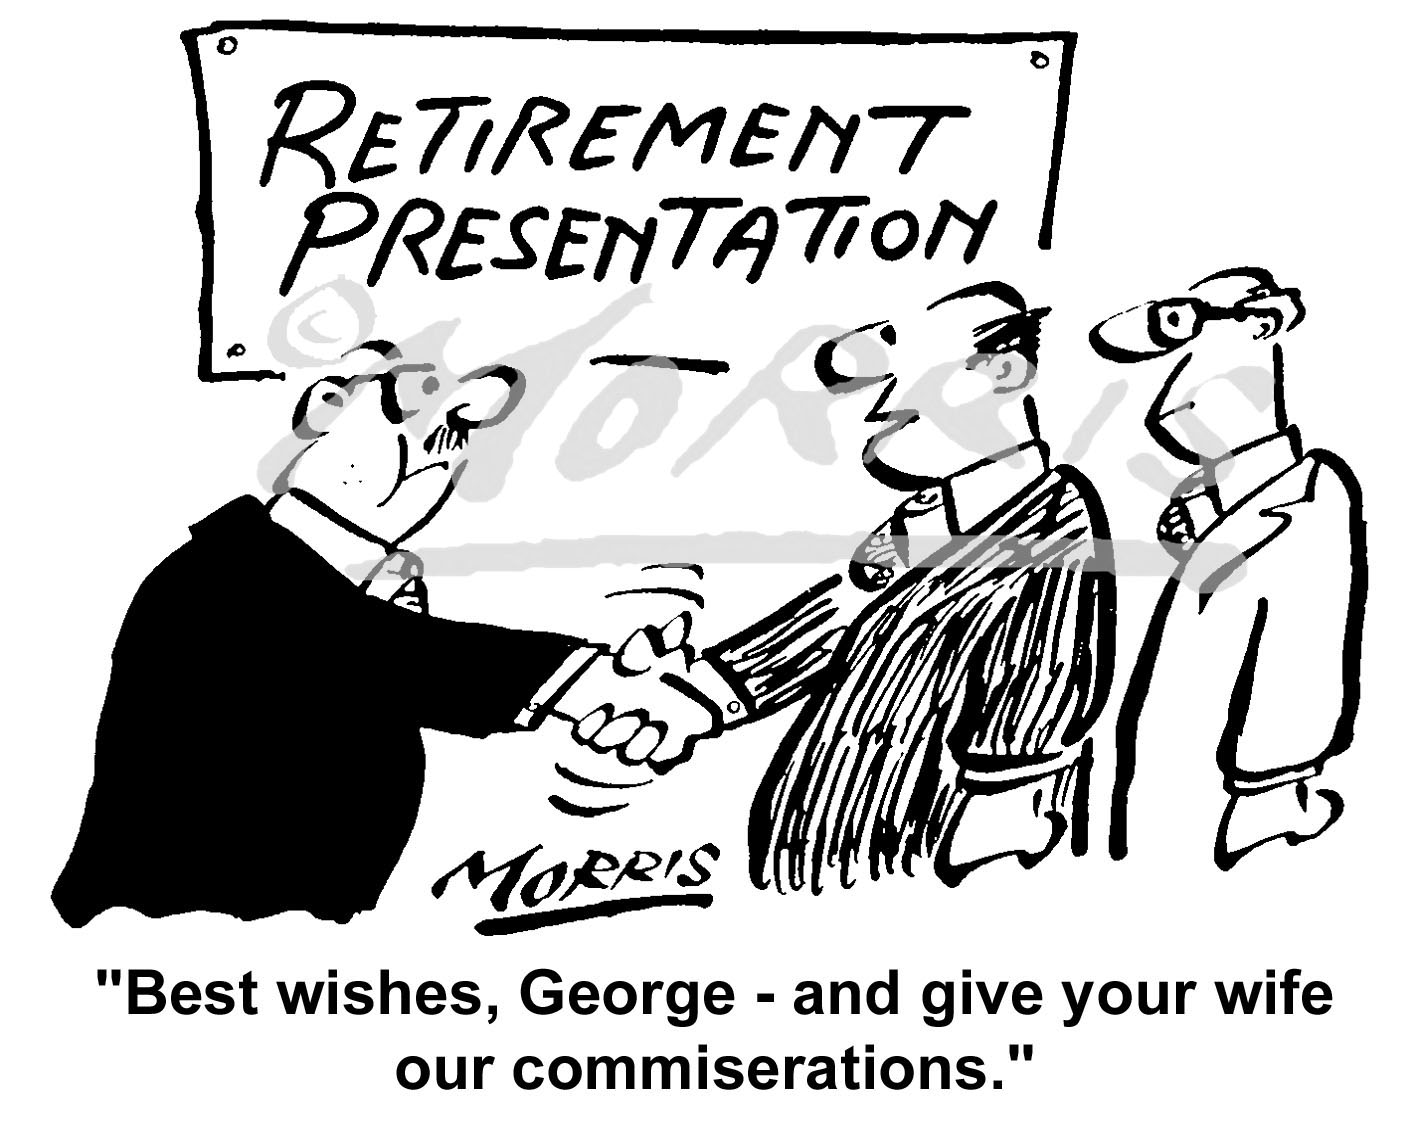 Retirement comic cartoon Ref: 1516bw